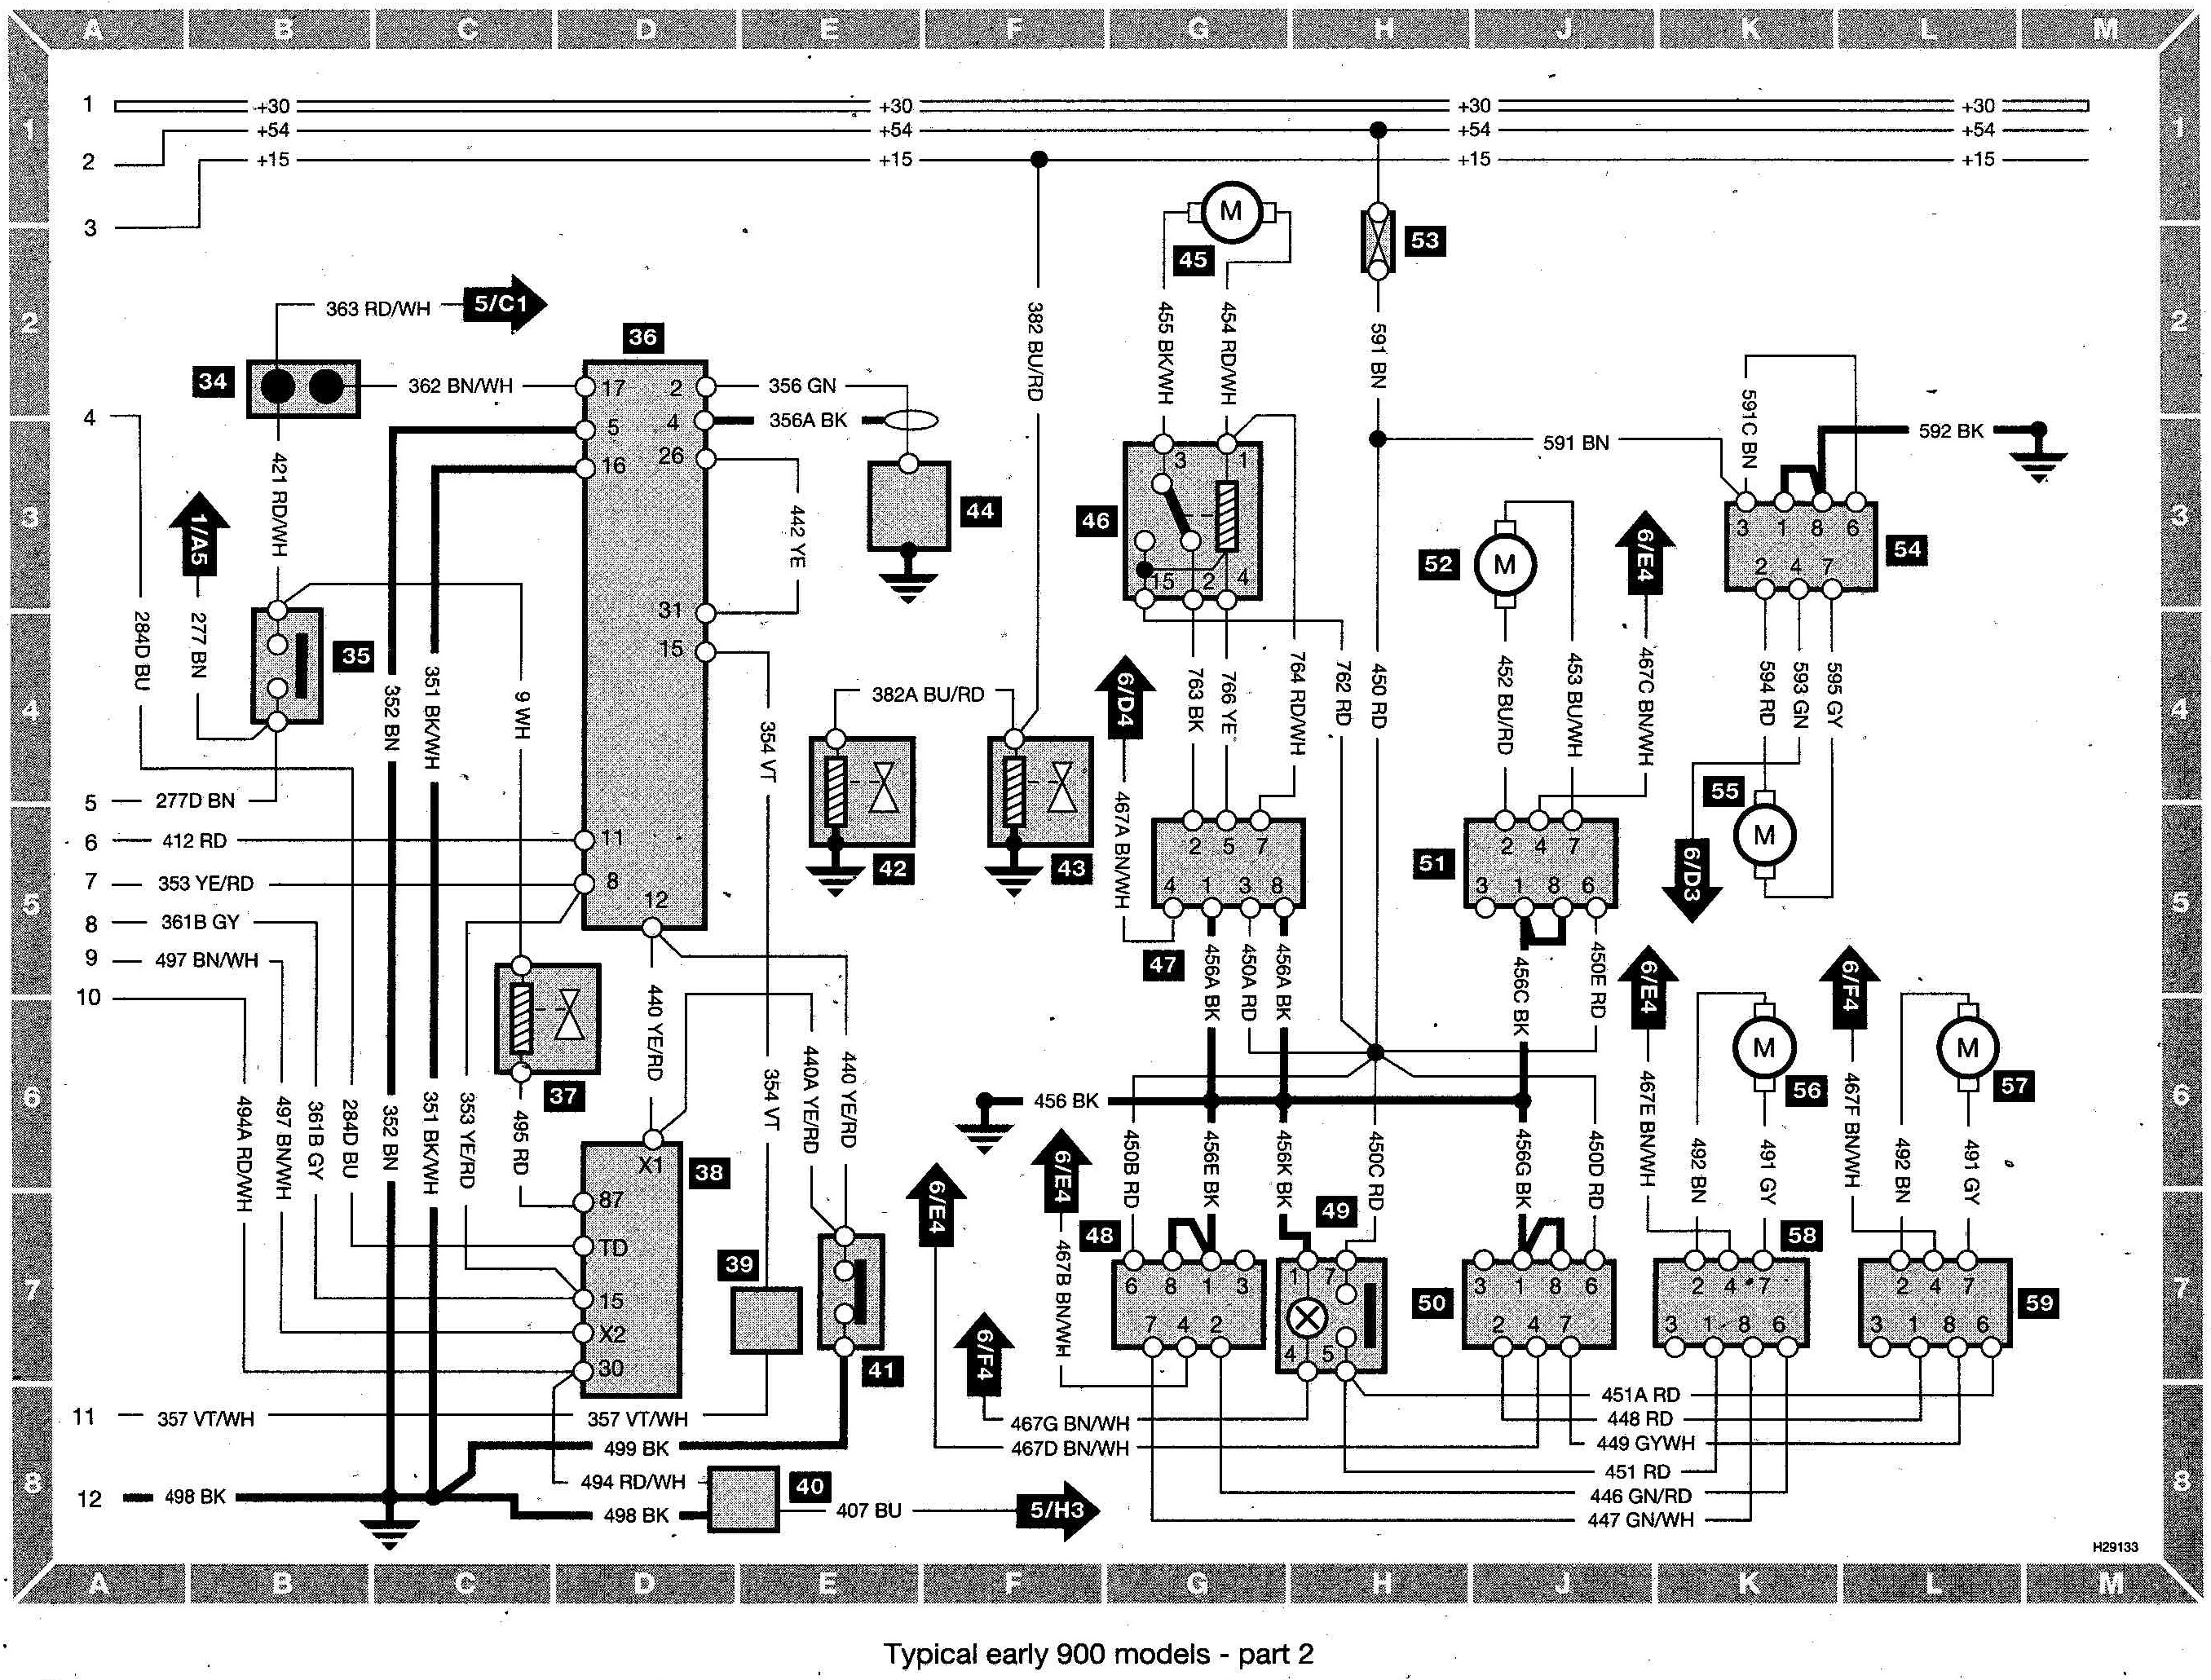 Saab 900 Wiring diagram (early models) part 2 index of saab saab 900 wiring diagram (early models) 2002 Saab 9.5 Turbo at webbmarketing.co